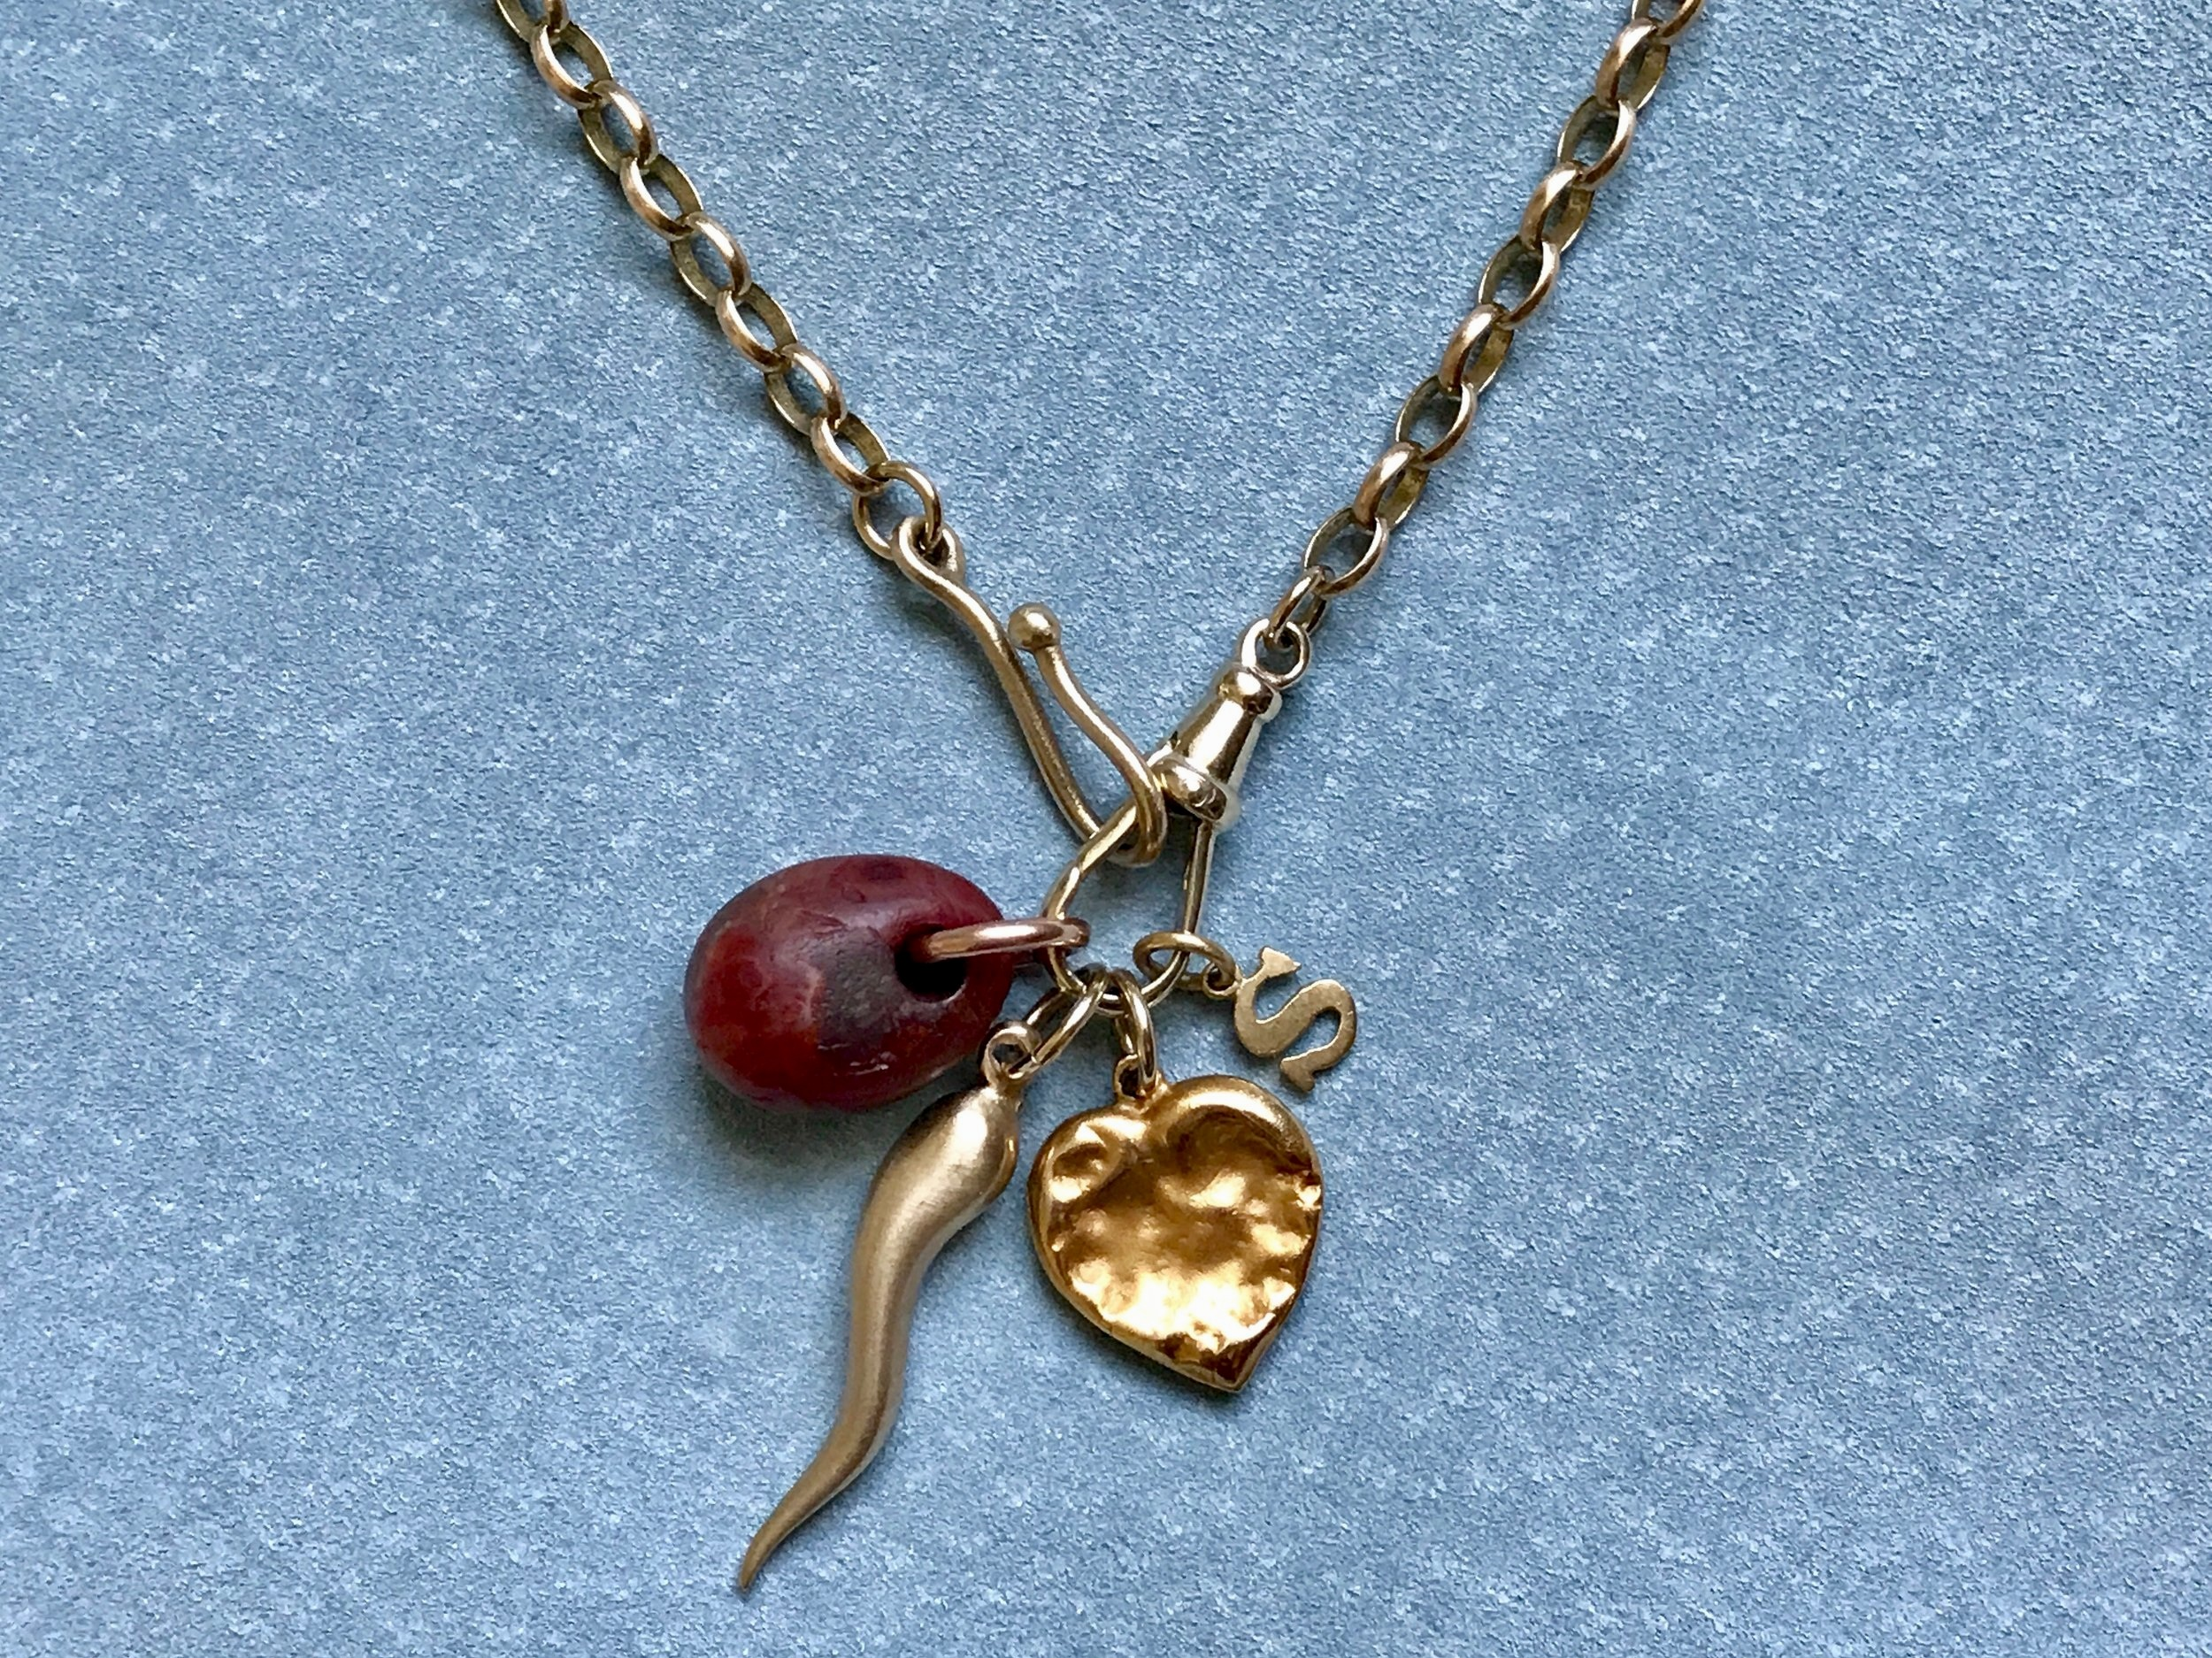 YELLOW BELCHER CHAIN WITH NEOLITHIC CARNELIAN, ITALIAN HORN, CHEWED HEART AND LETTER CHARM